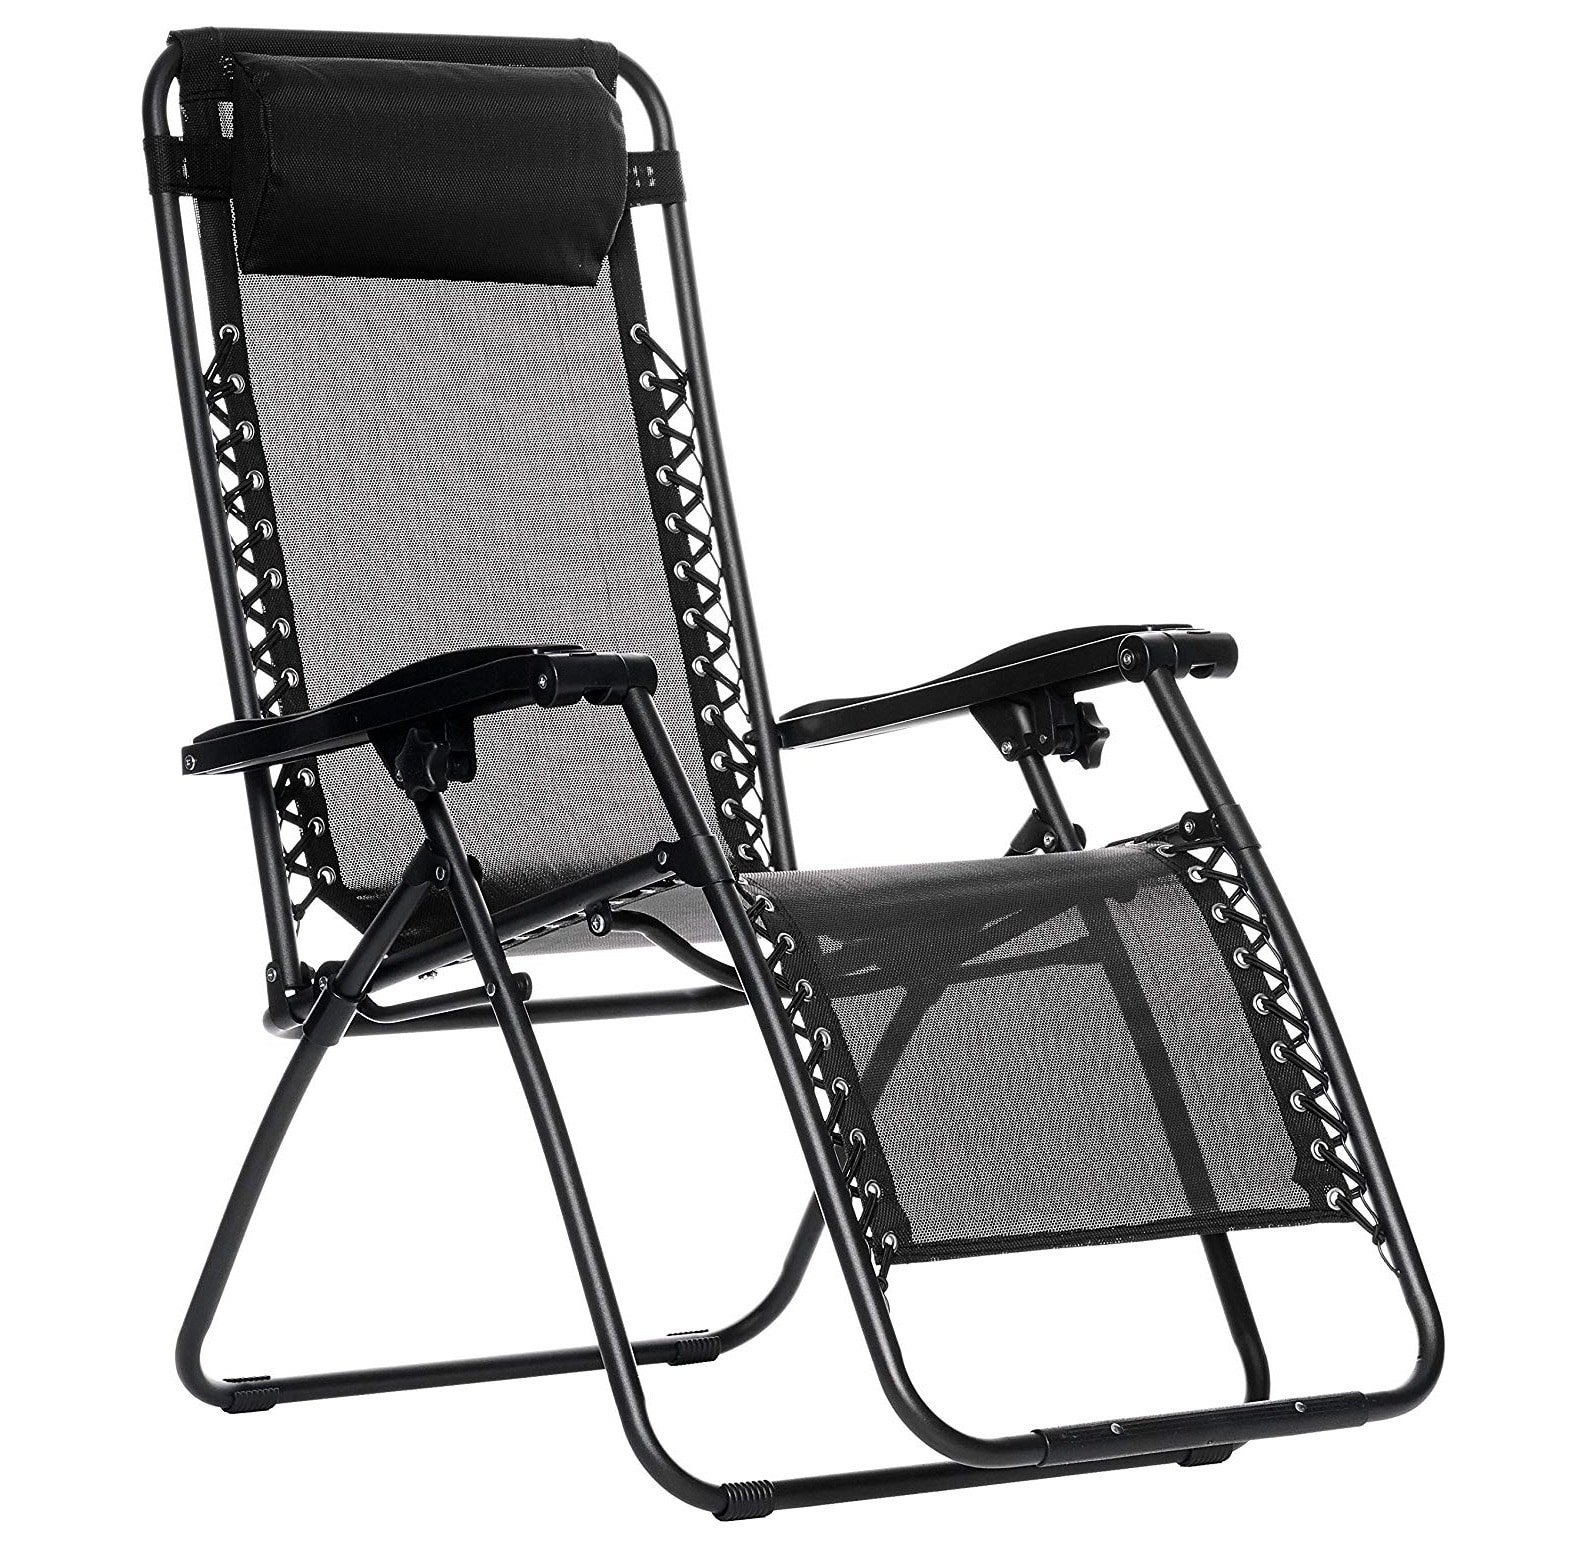 4. AmazonBasics Outdoor Folding Lounge Chair with Zero Gravity- Best Amazon Outdoor Lounge Chairs